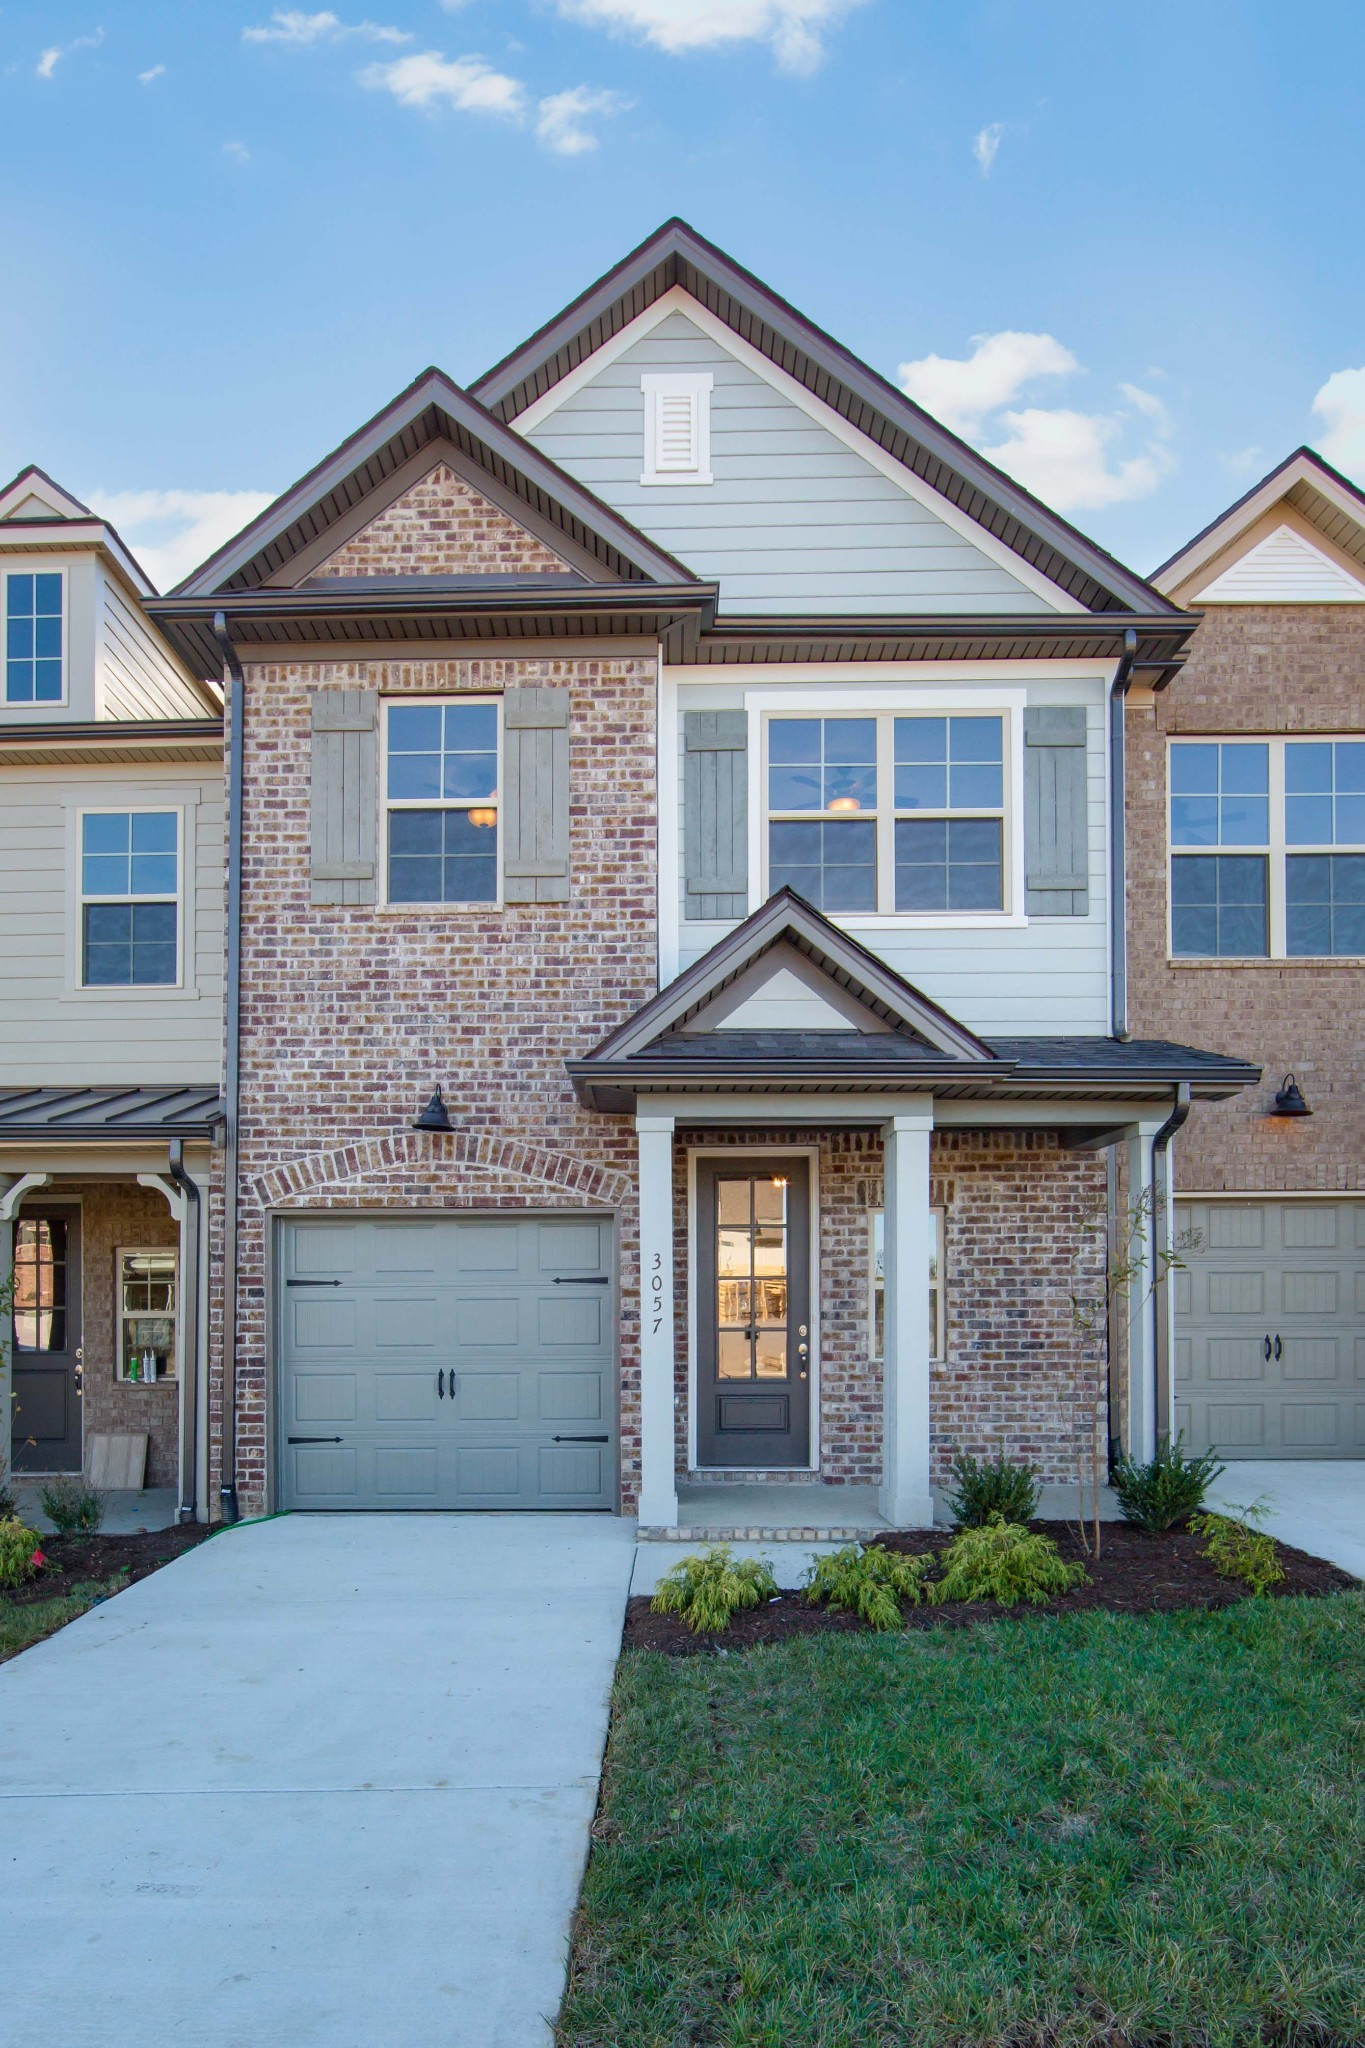 3140 Sassafras Ln - Lot 1220 Property Photo - Thompsons Station, TN real estate listing